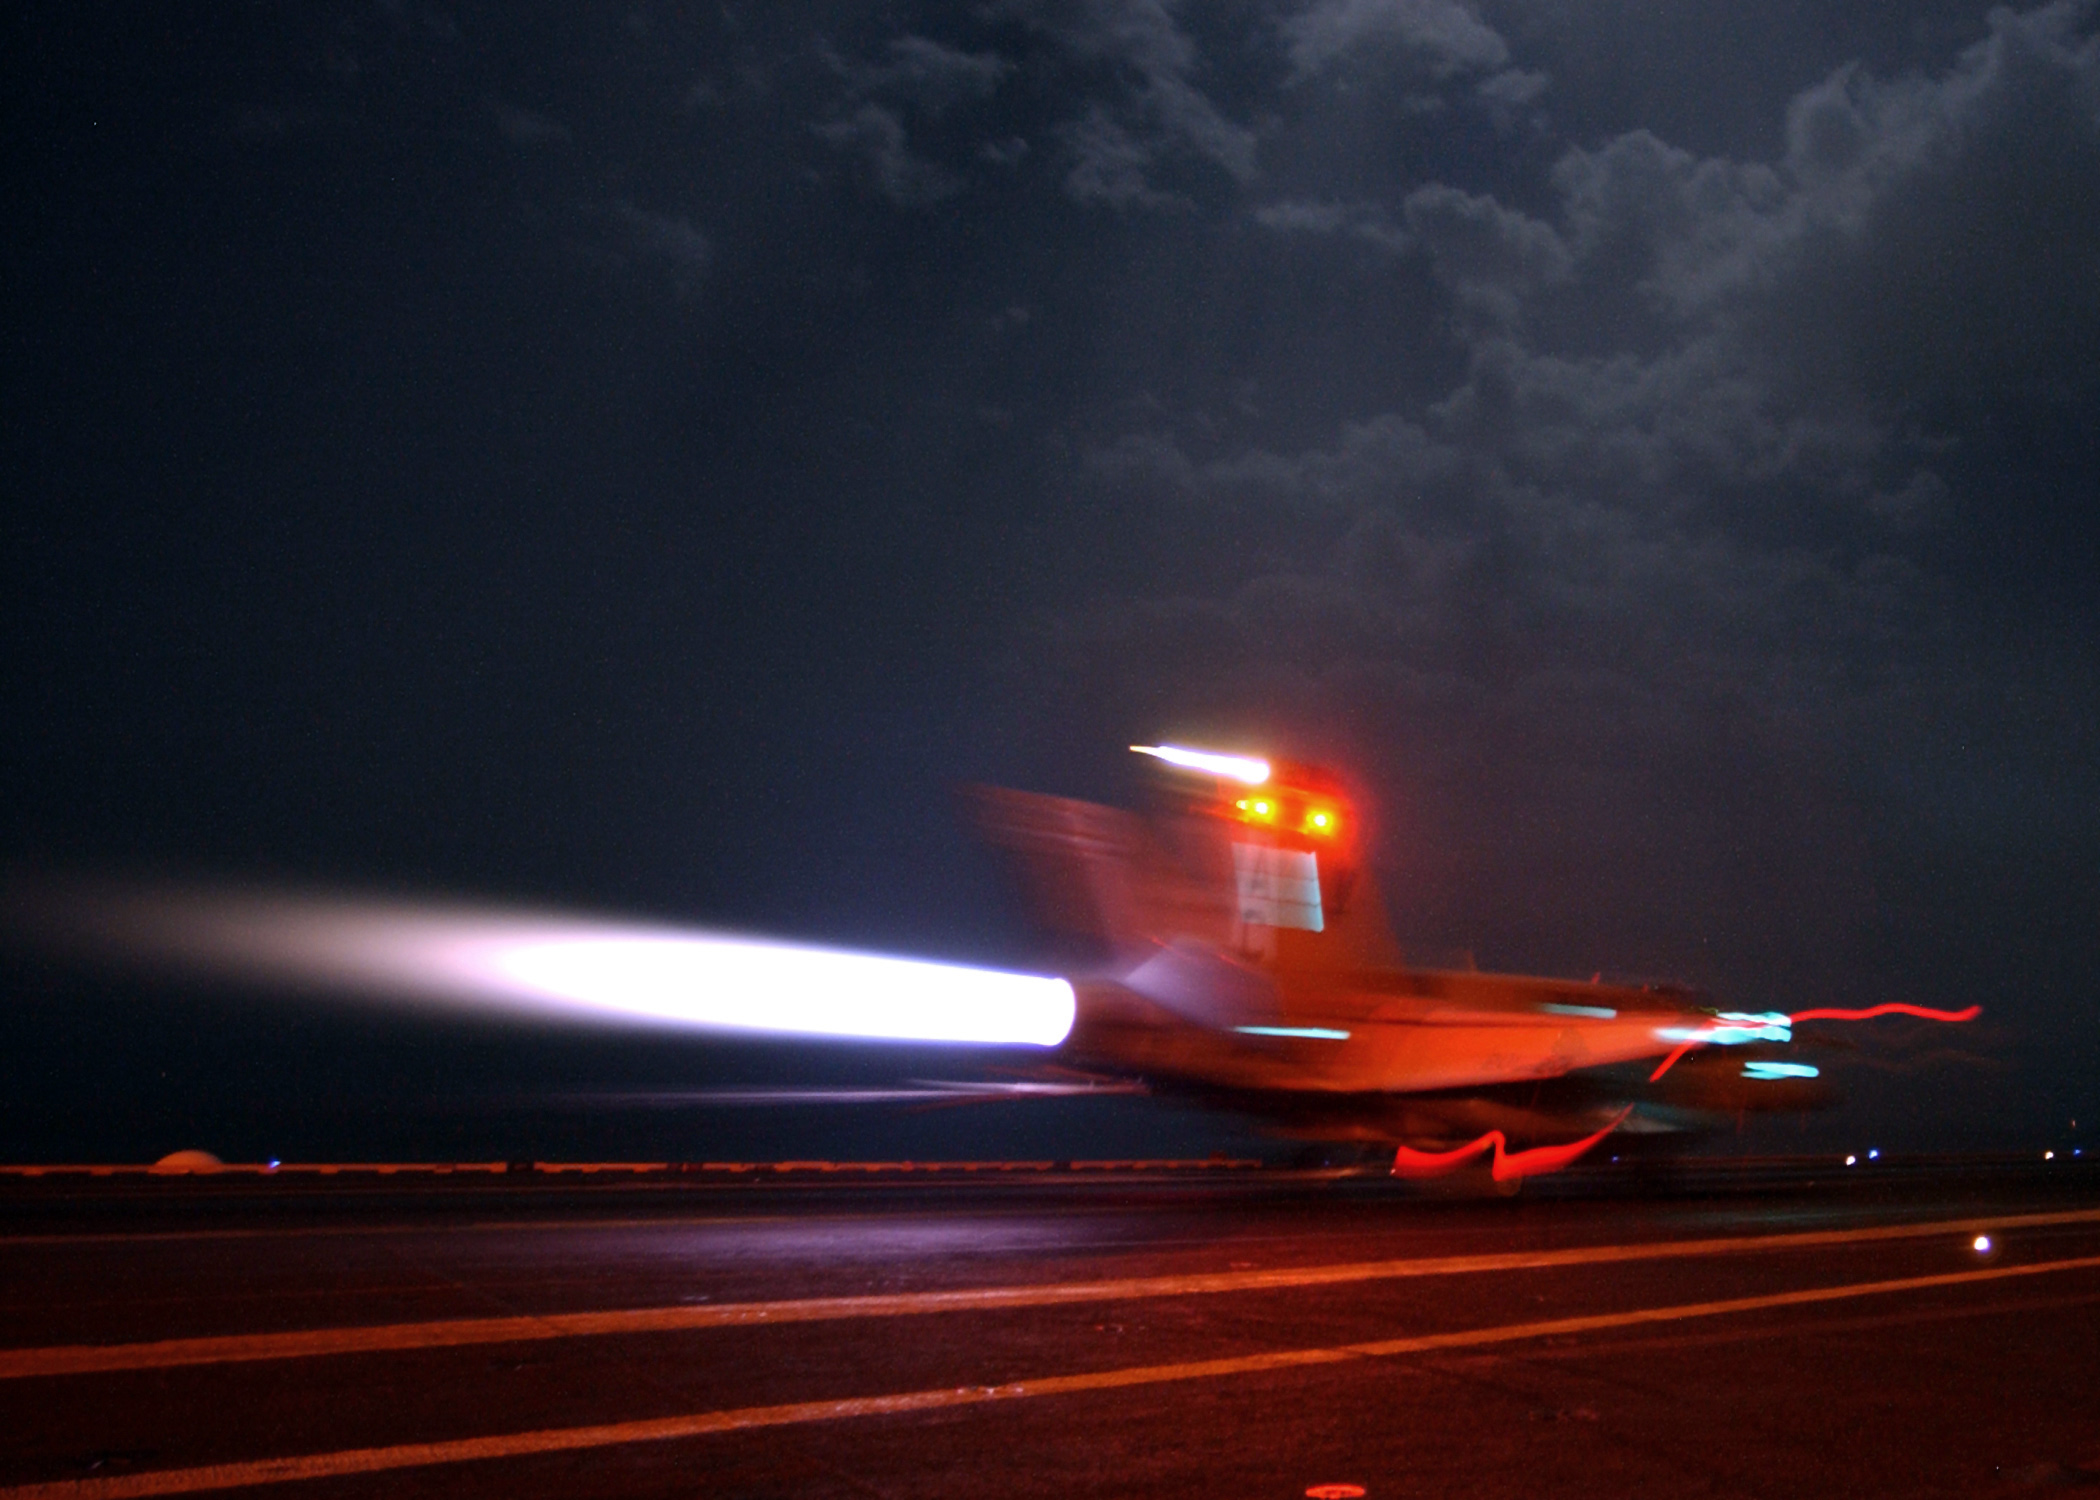 An aircraft lights its afterburners to maintain full power following an arrested landing aboard an aircraft carrier.